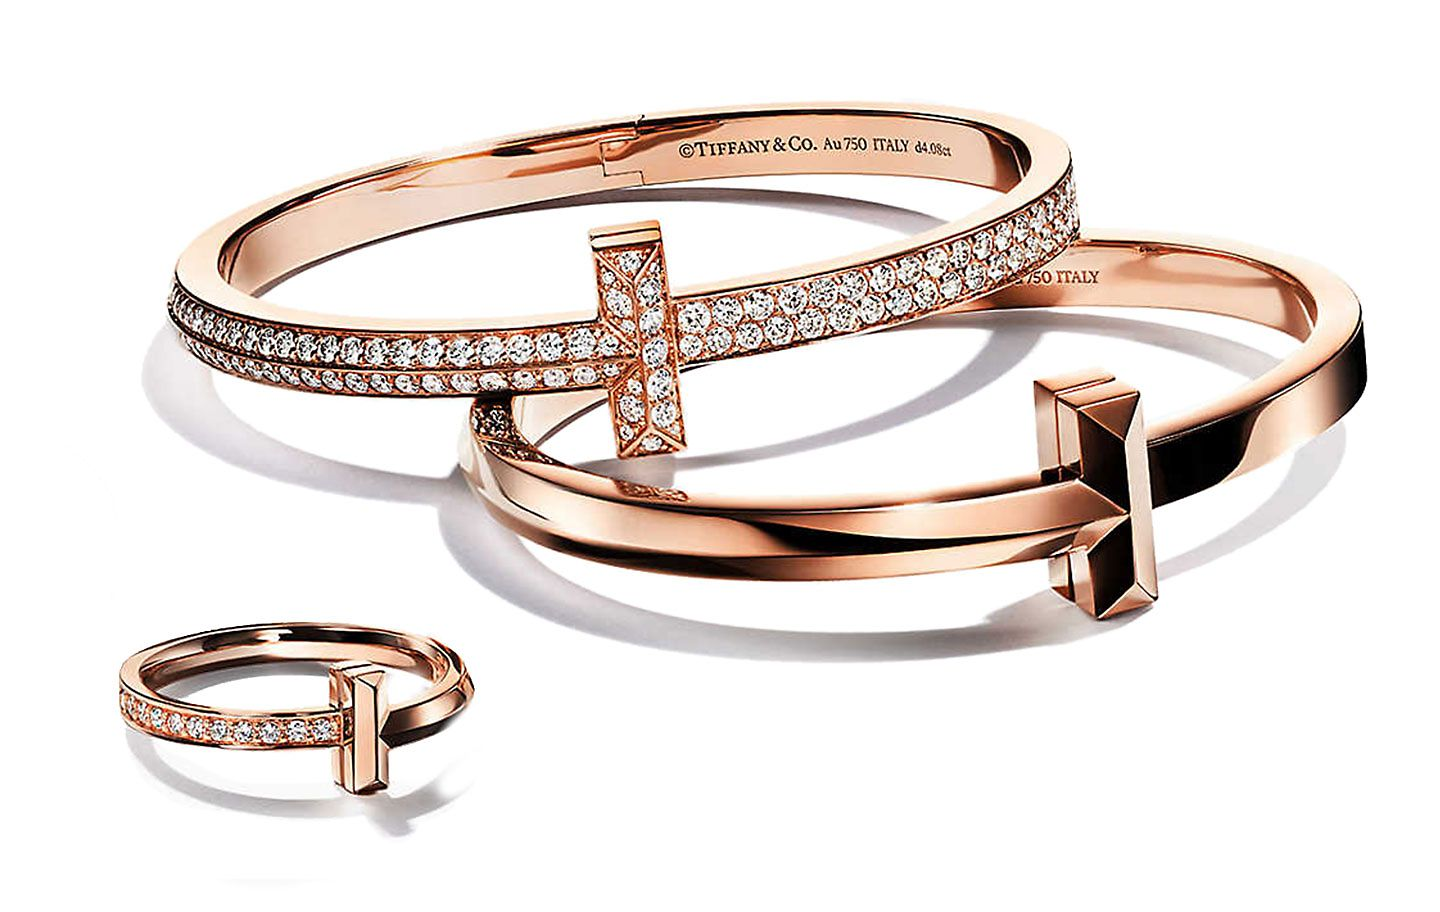 Tiffany & Co. Leader in Sustainable Luxury